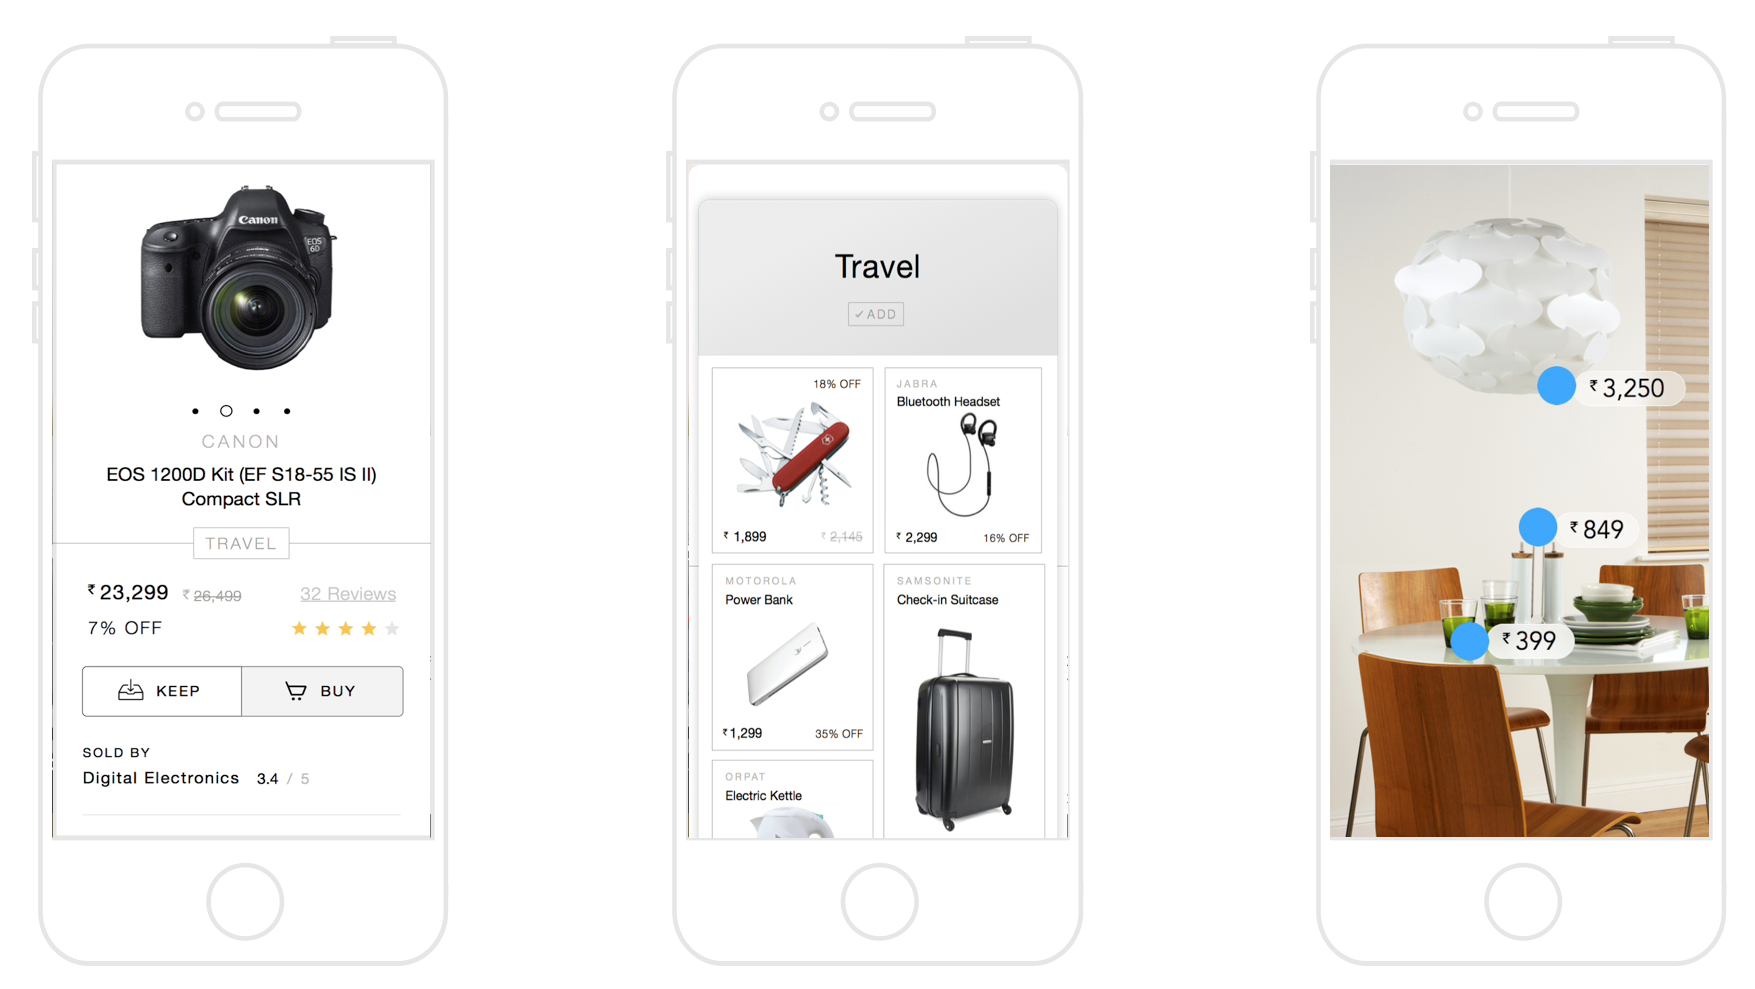 Product Page, Network of Things & Stories